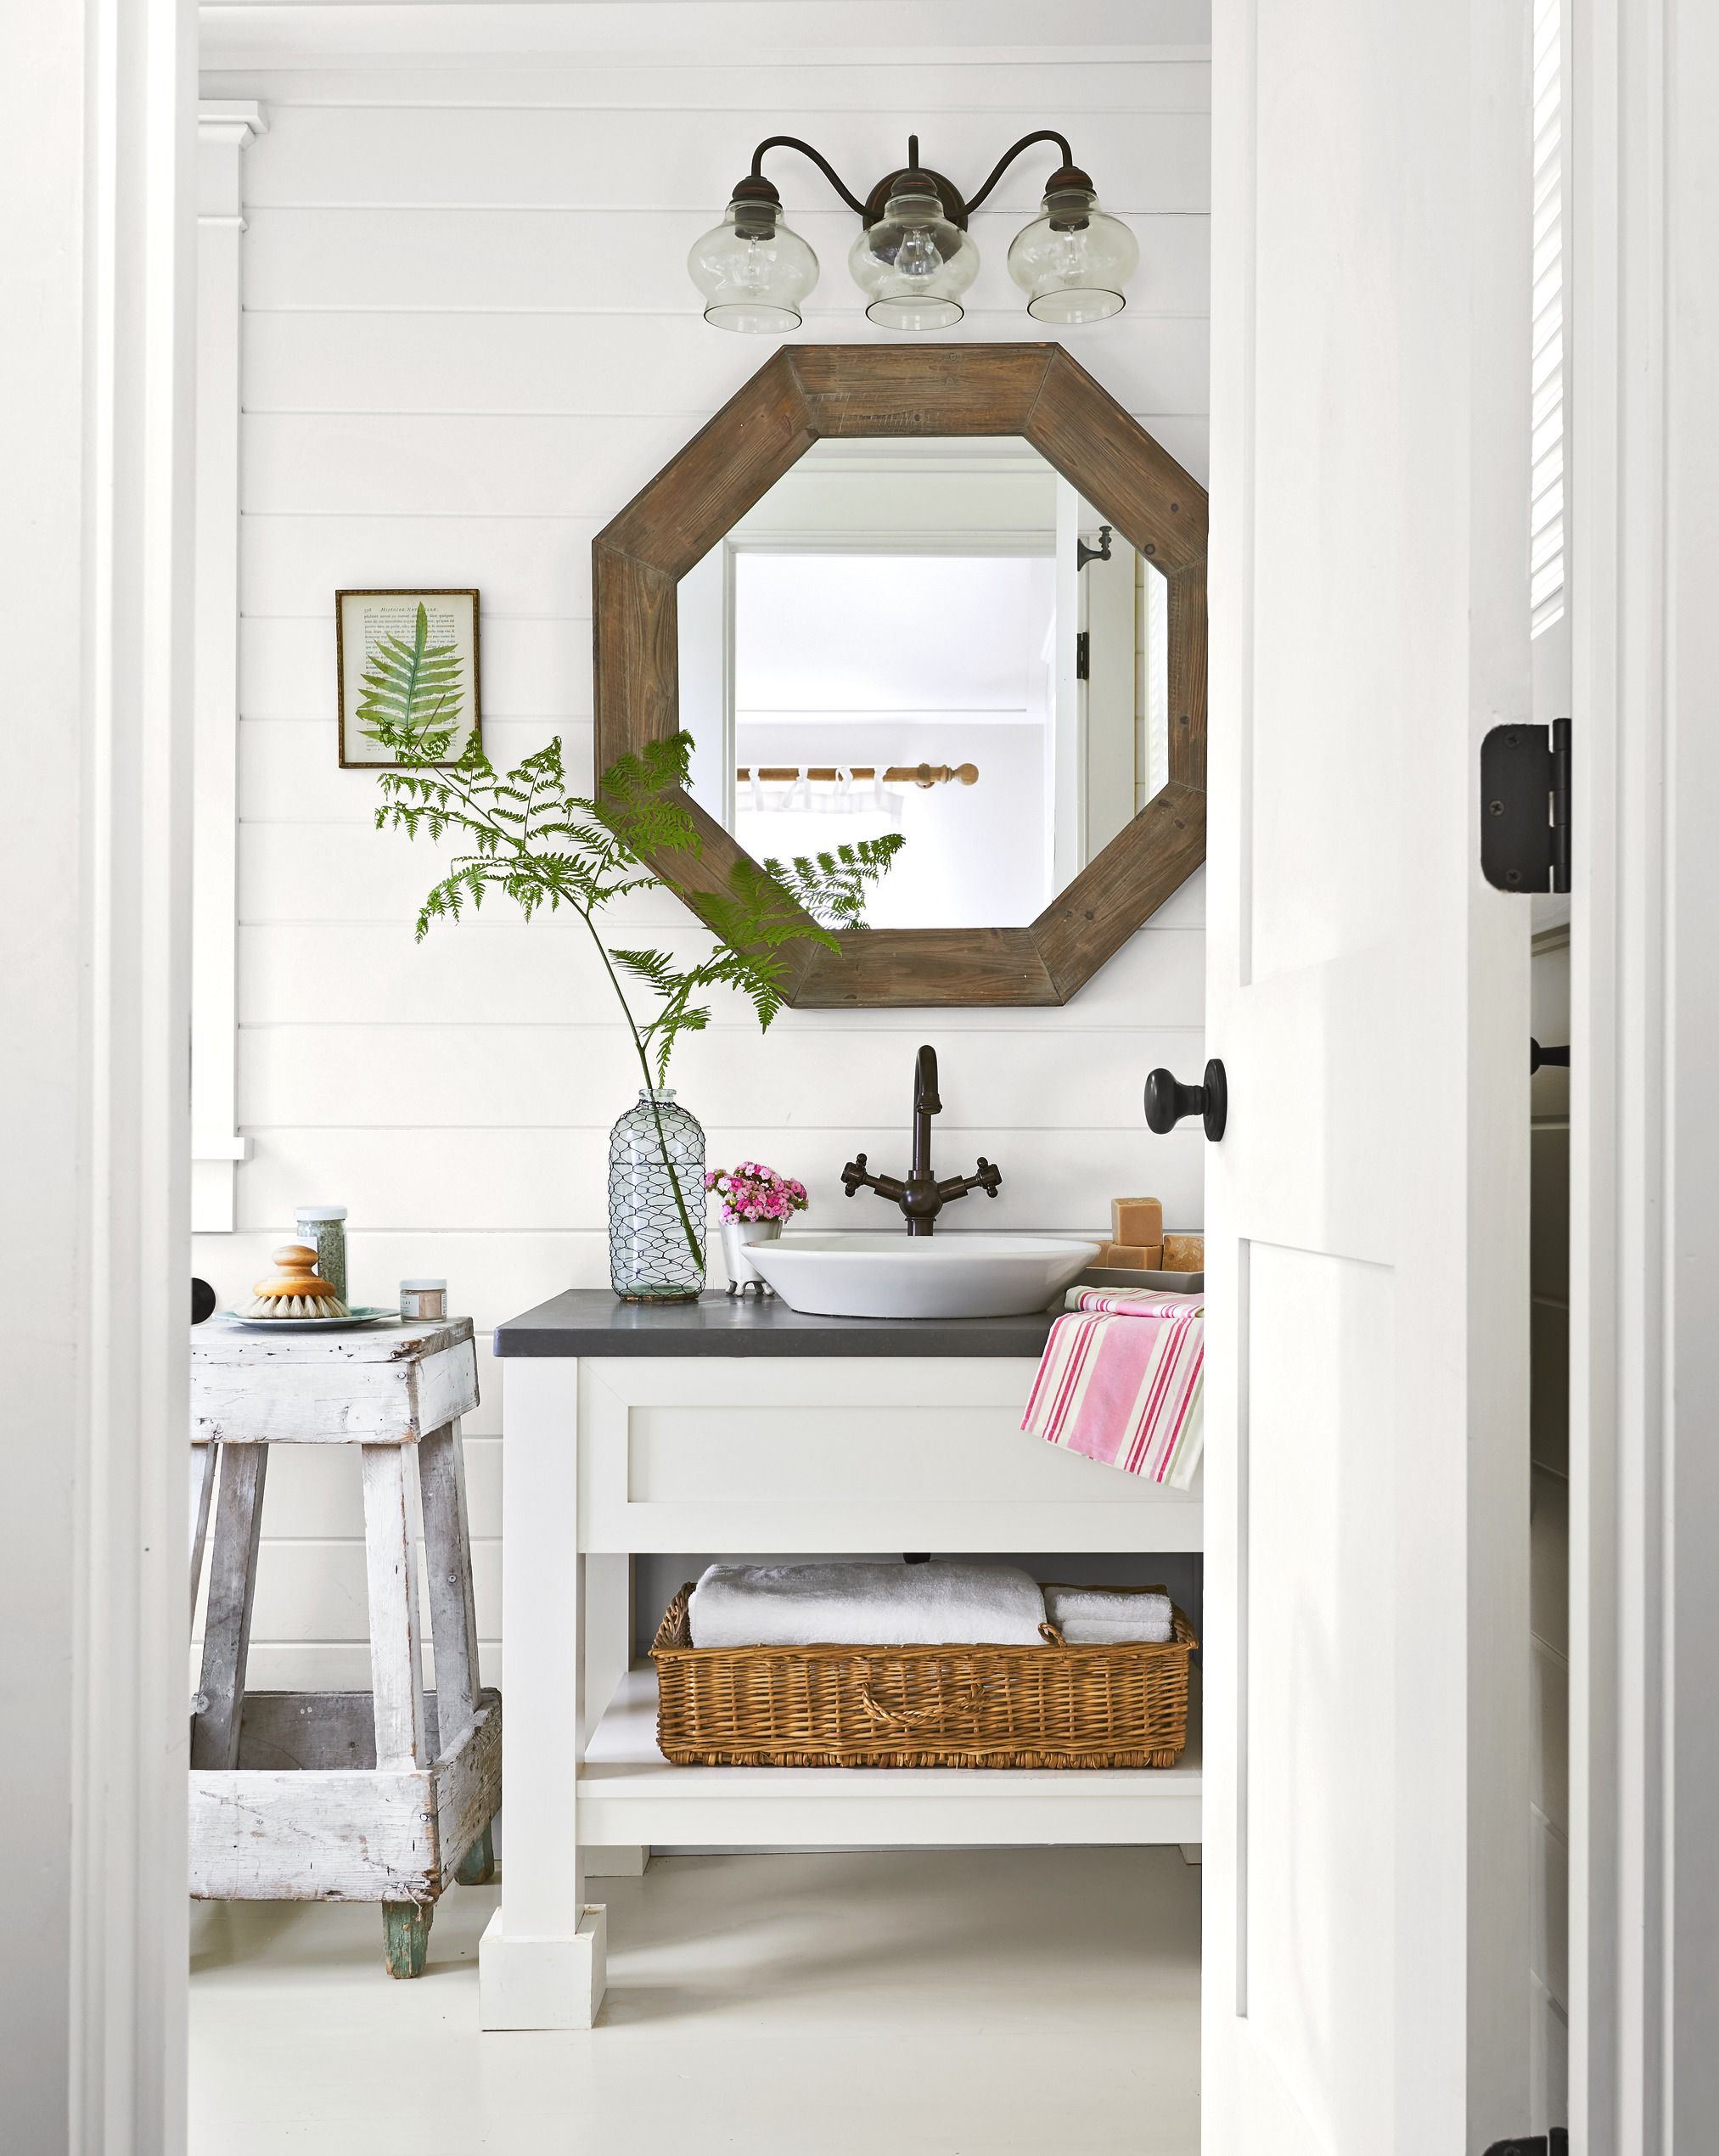 8 Half Bathroom Ideas - Decor Ideas for Small Spaces